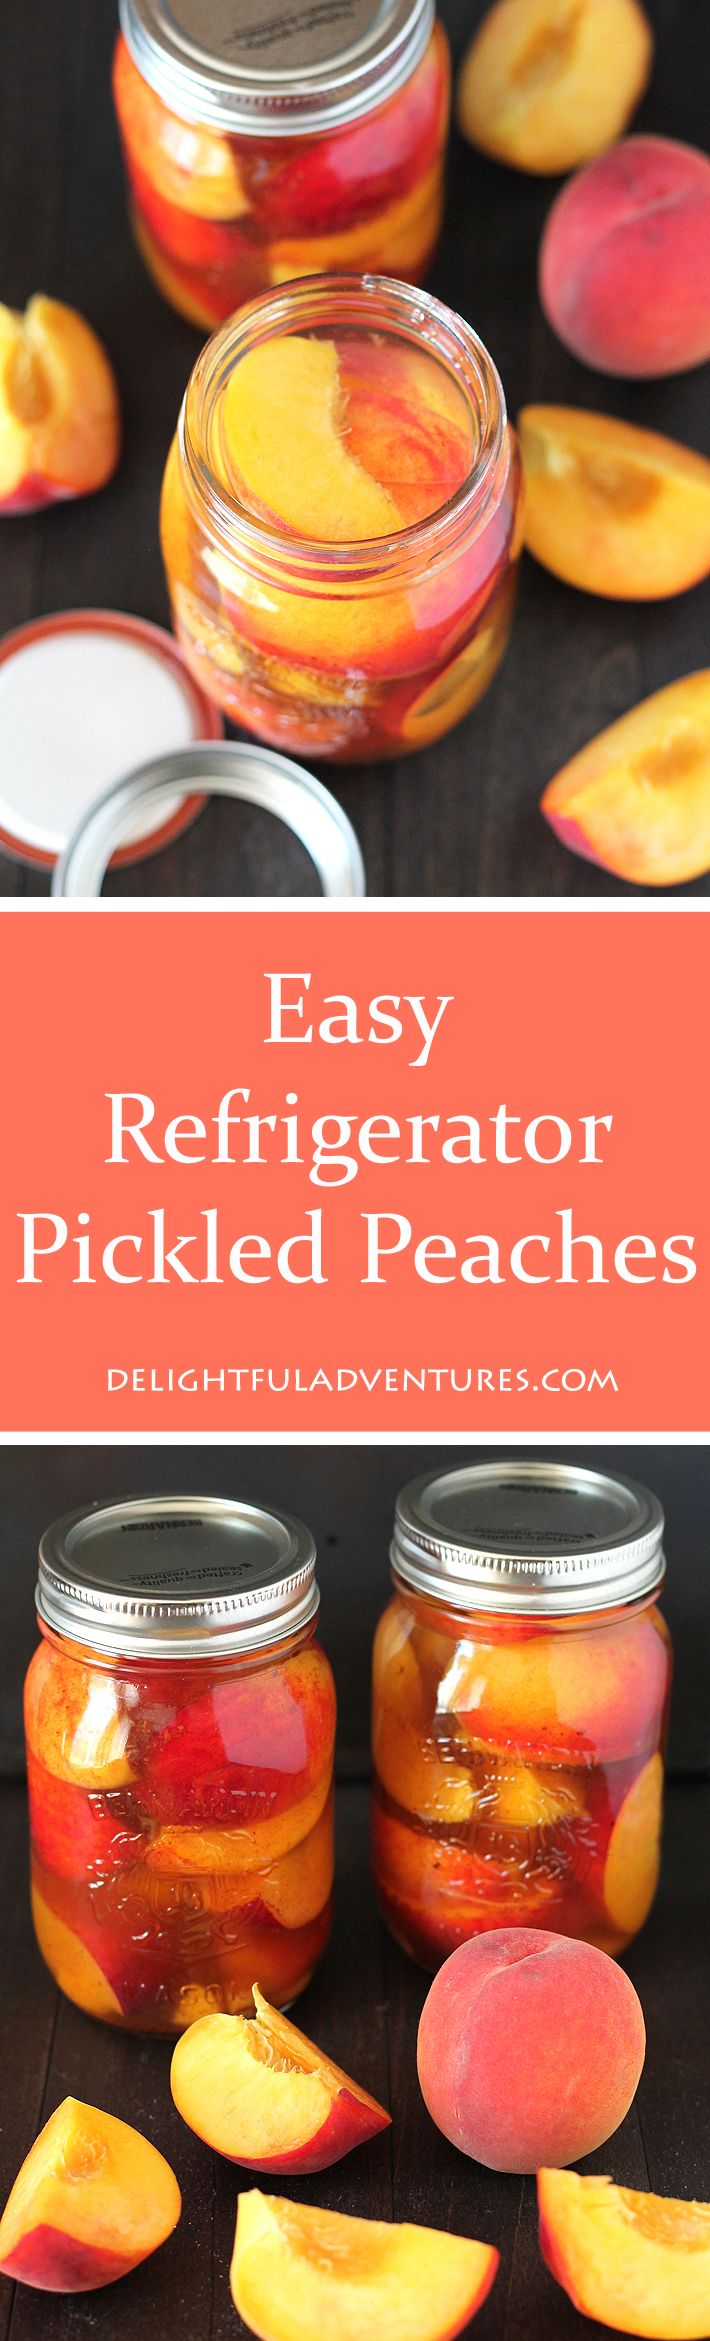 Prolong summer peach season by making this recipe for Easy Refrigerator Pickled Peaches. They're tangy, sweet, spicy, and delicious!